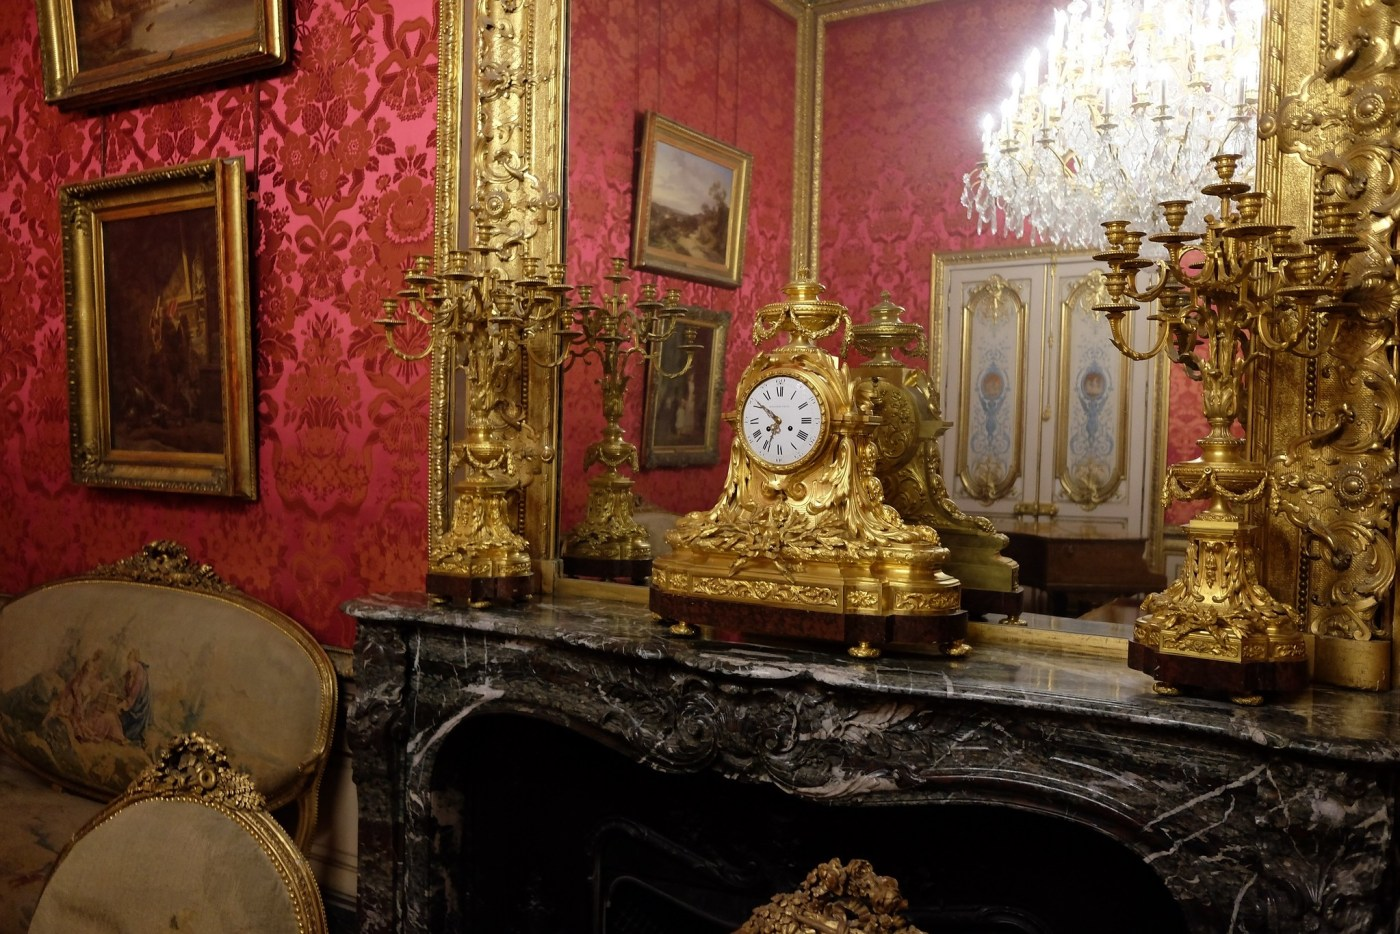 Clock in the Palace of Versailles